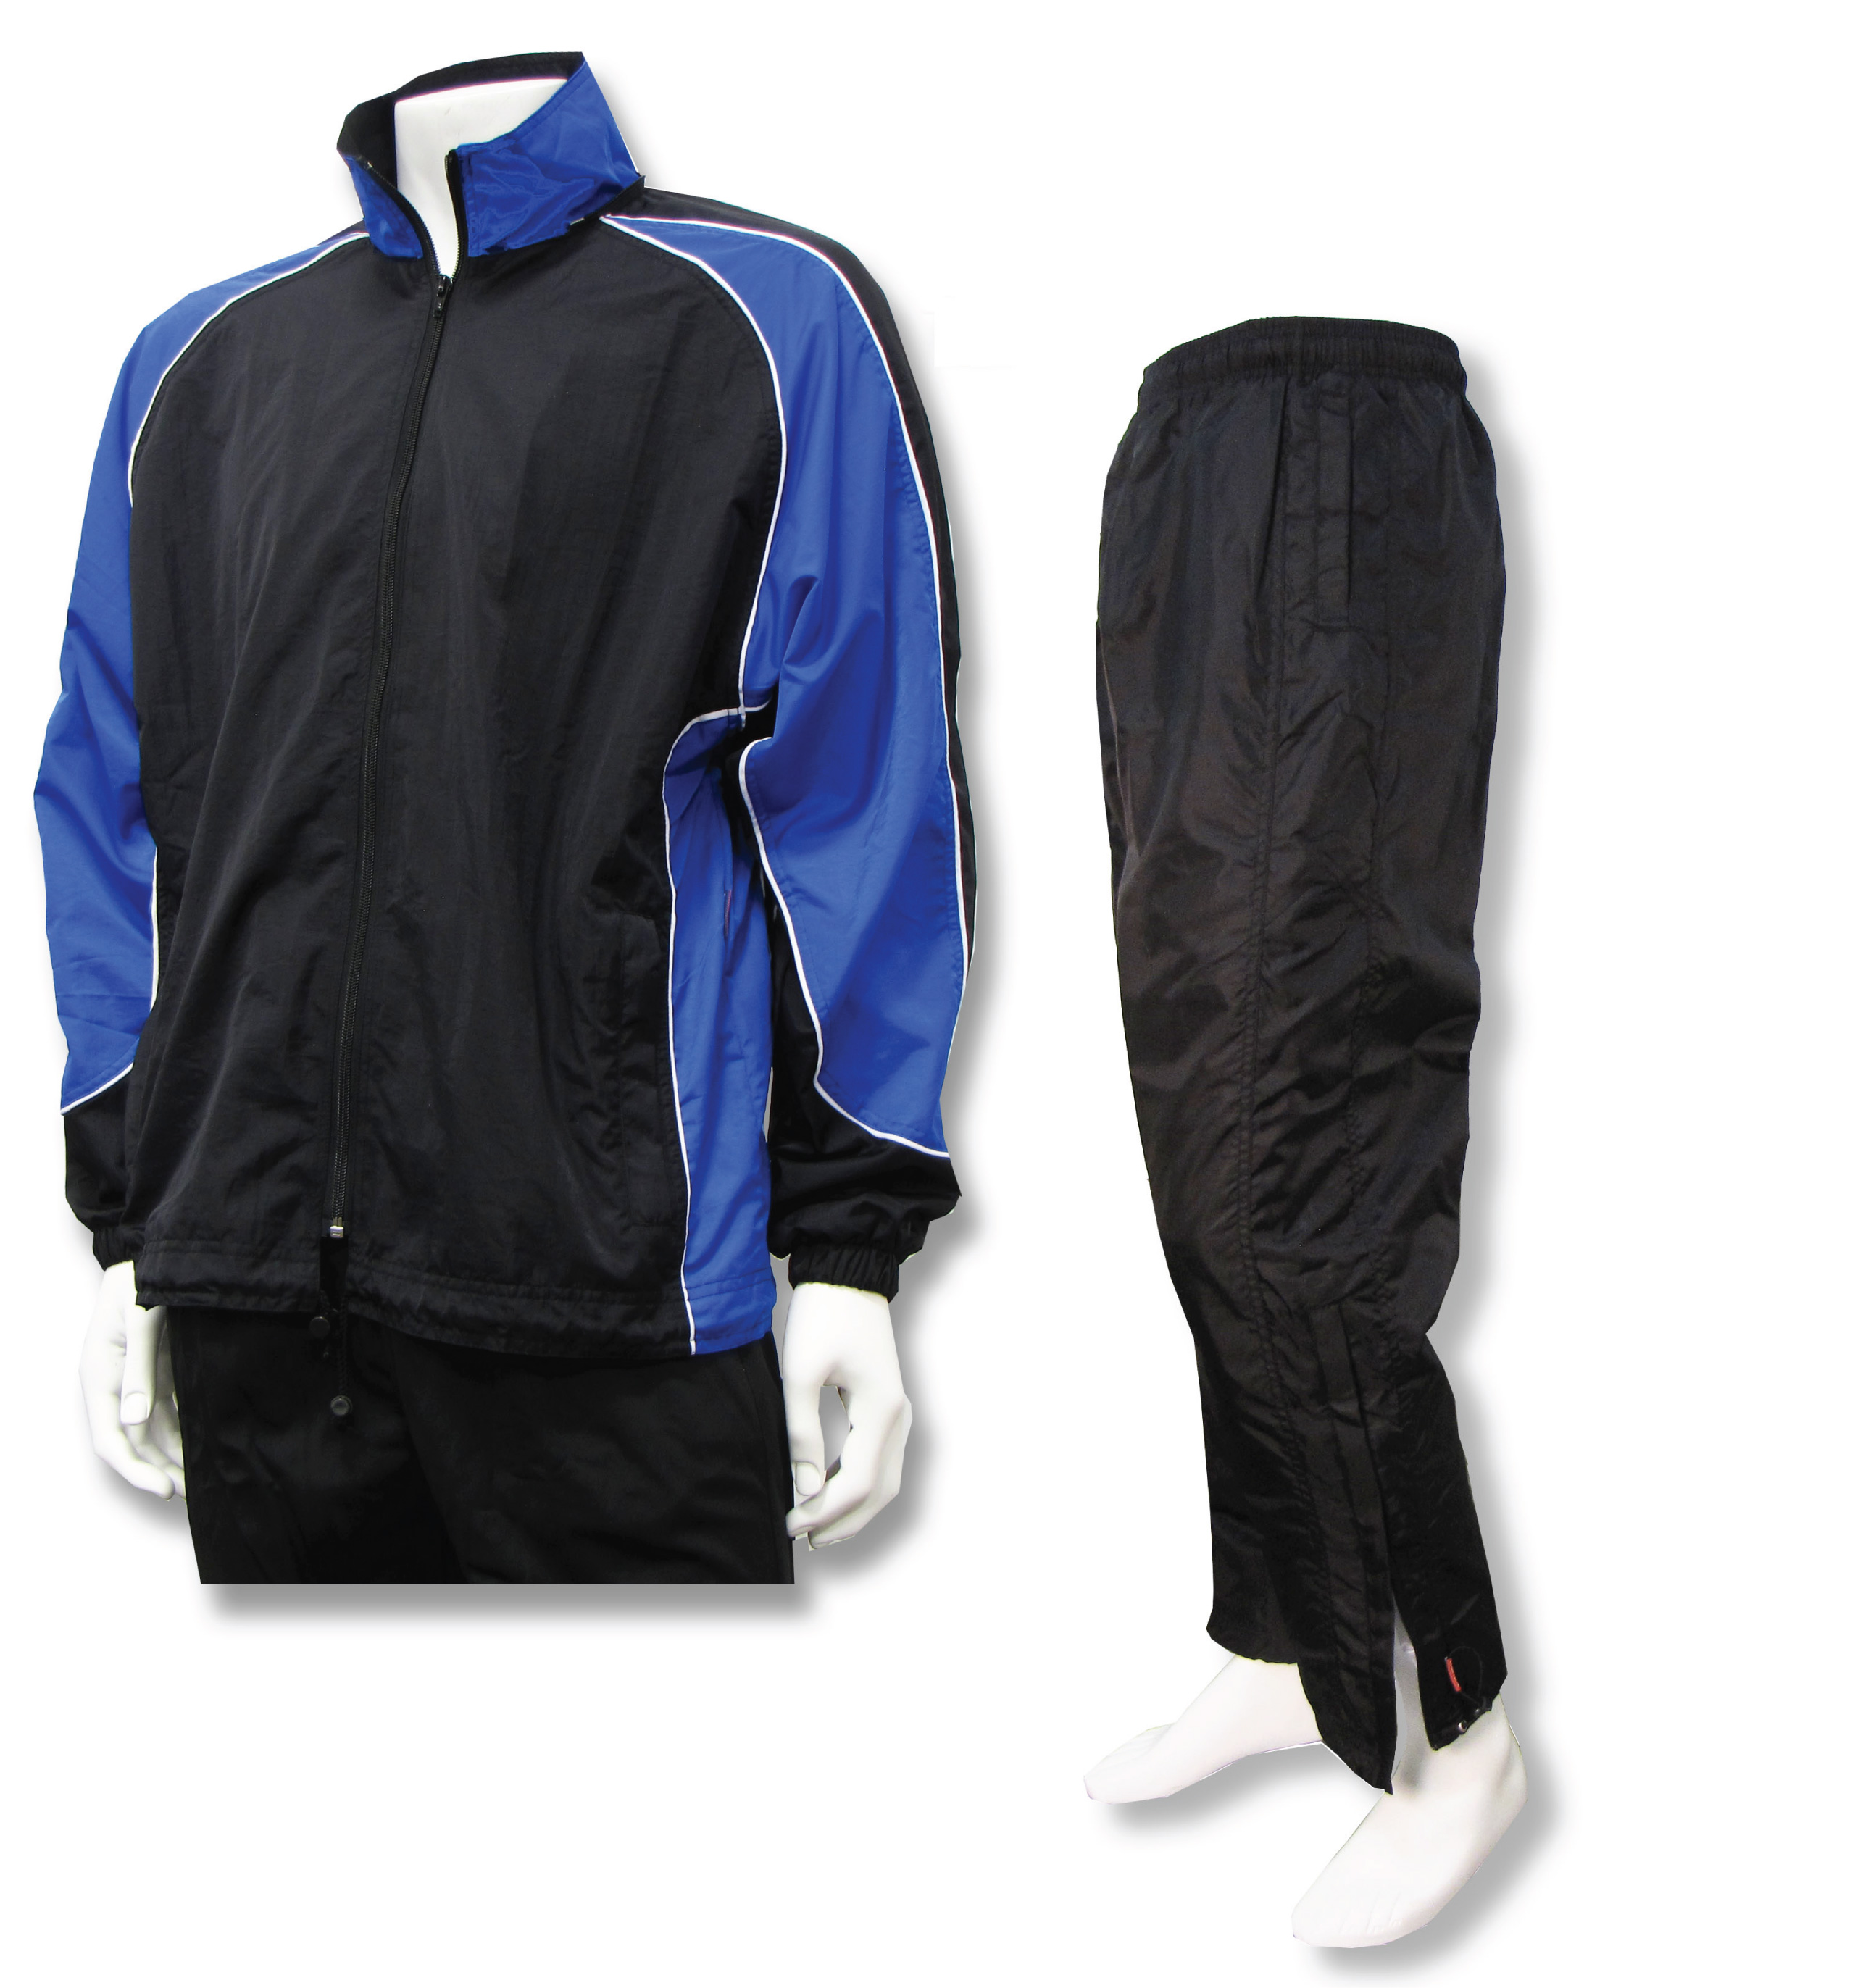 Water resistant warmup set in royal/black by Code Four Athletics